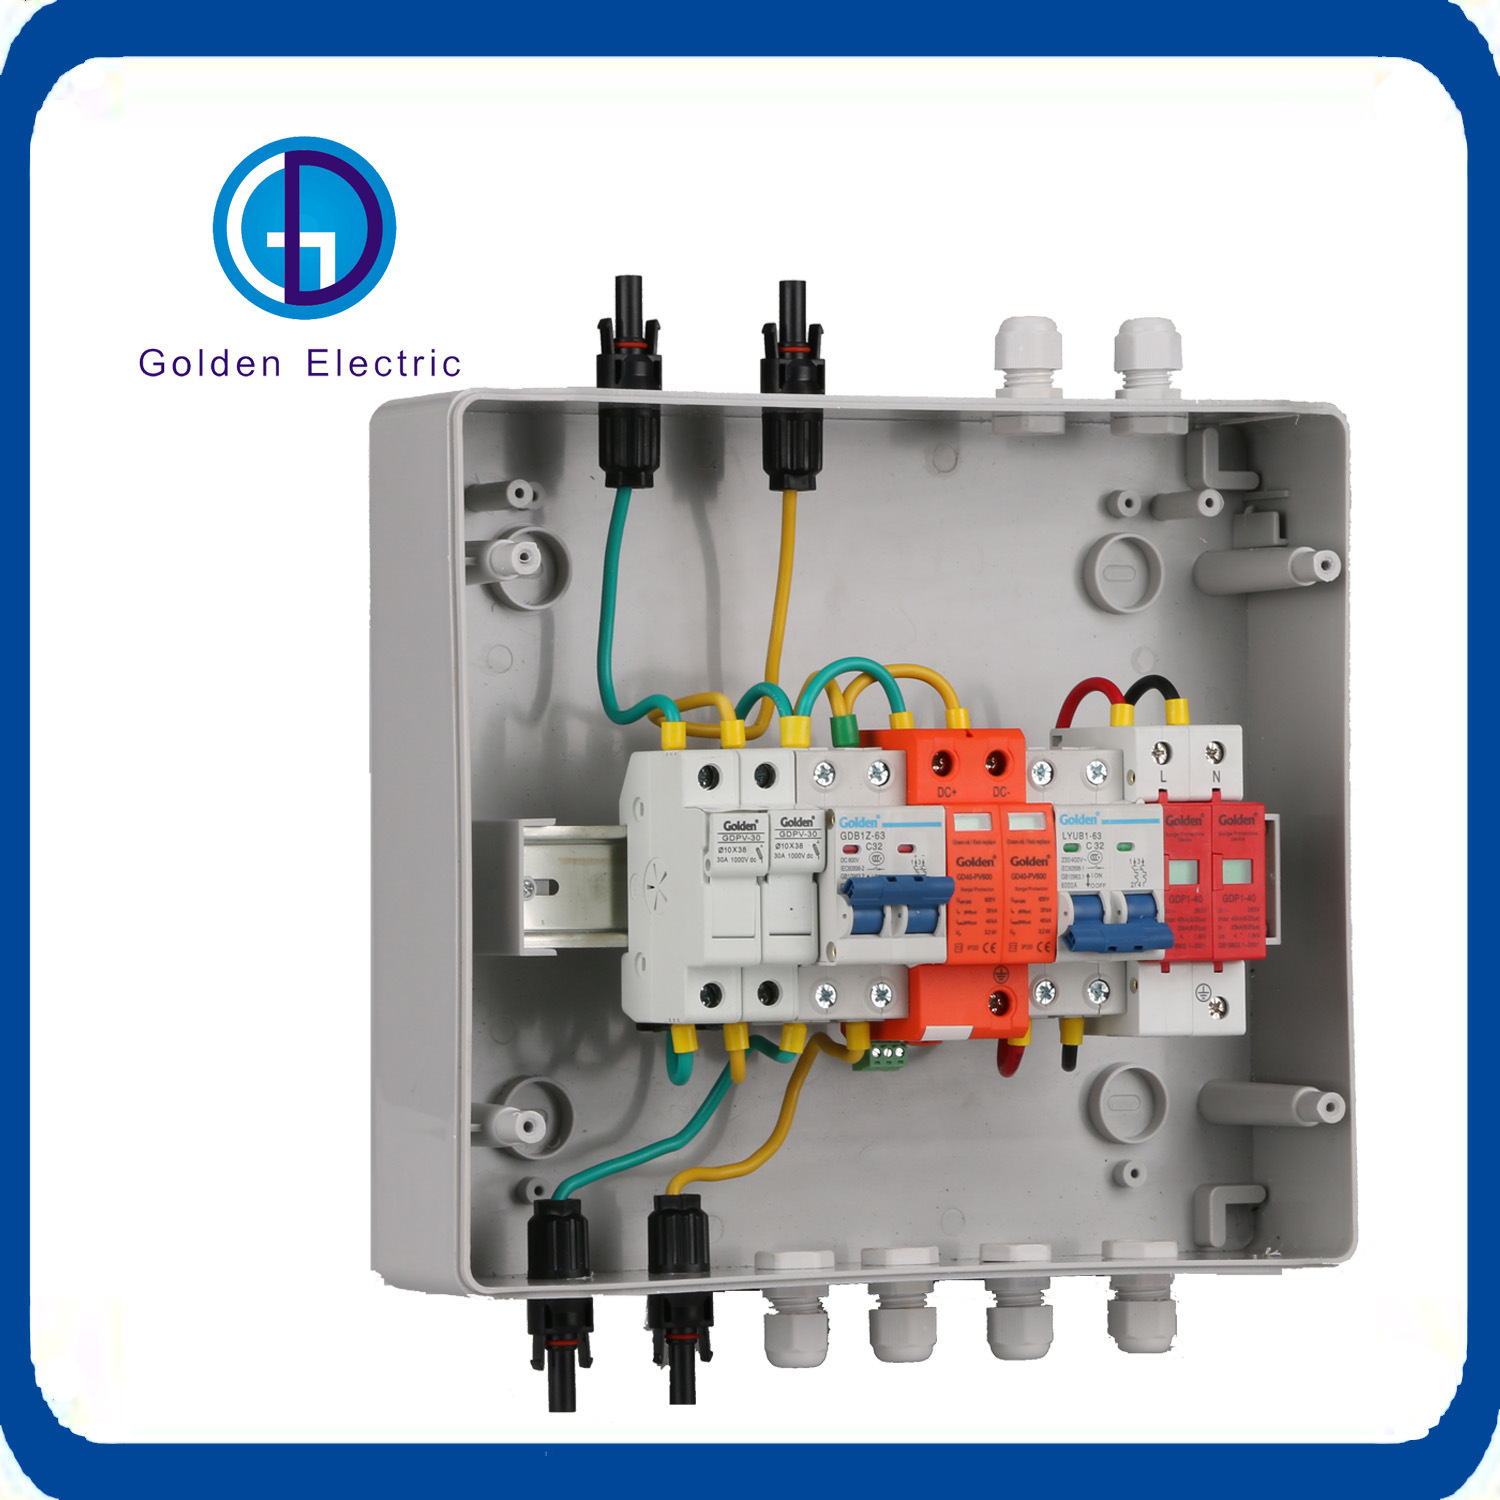 Solar Panel Combiner Box Wiring Trusted Schematics Diagram Pv To Panels System Connect Between Ground Fault Undetected In